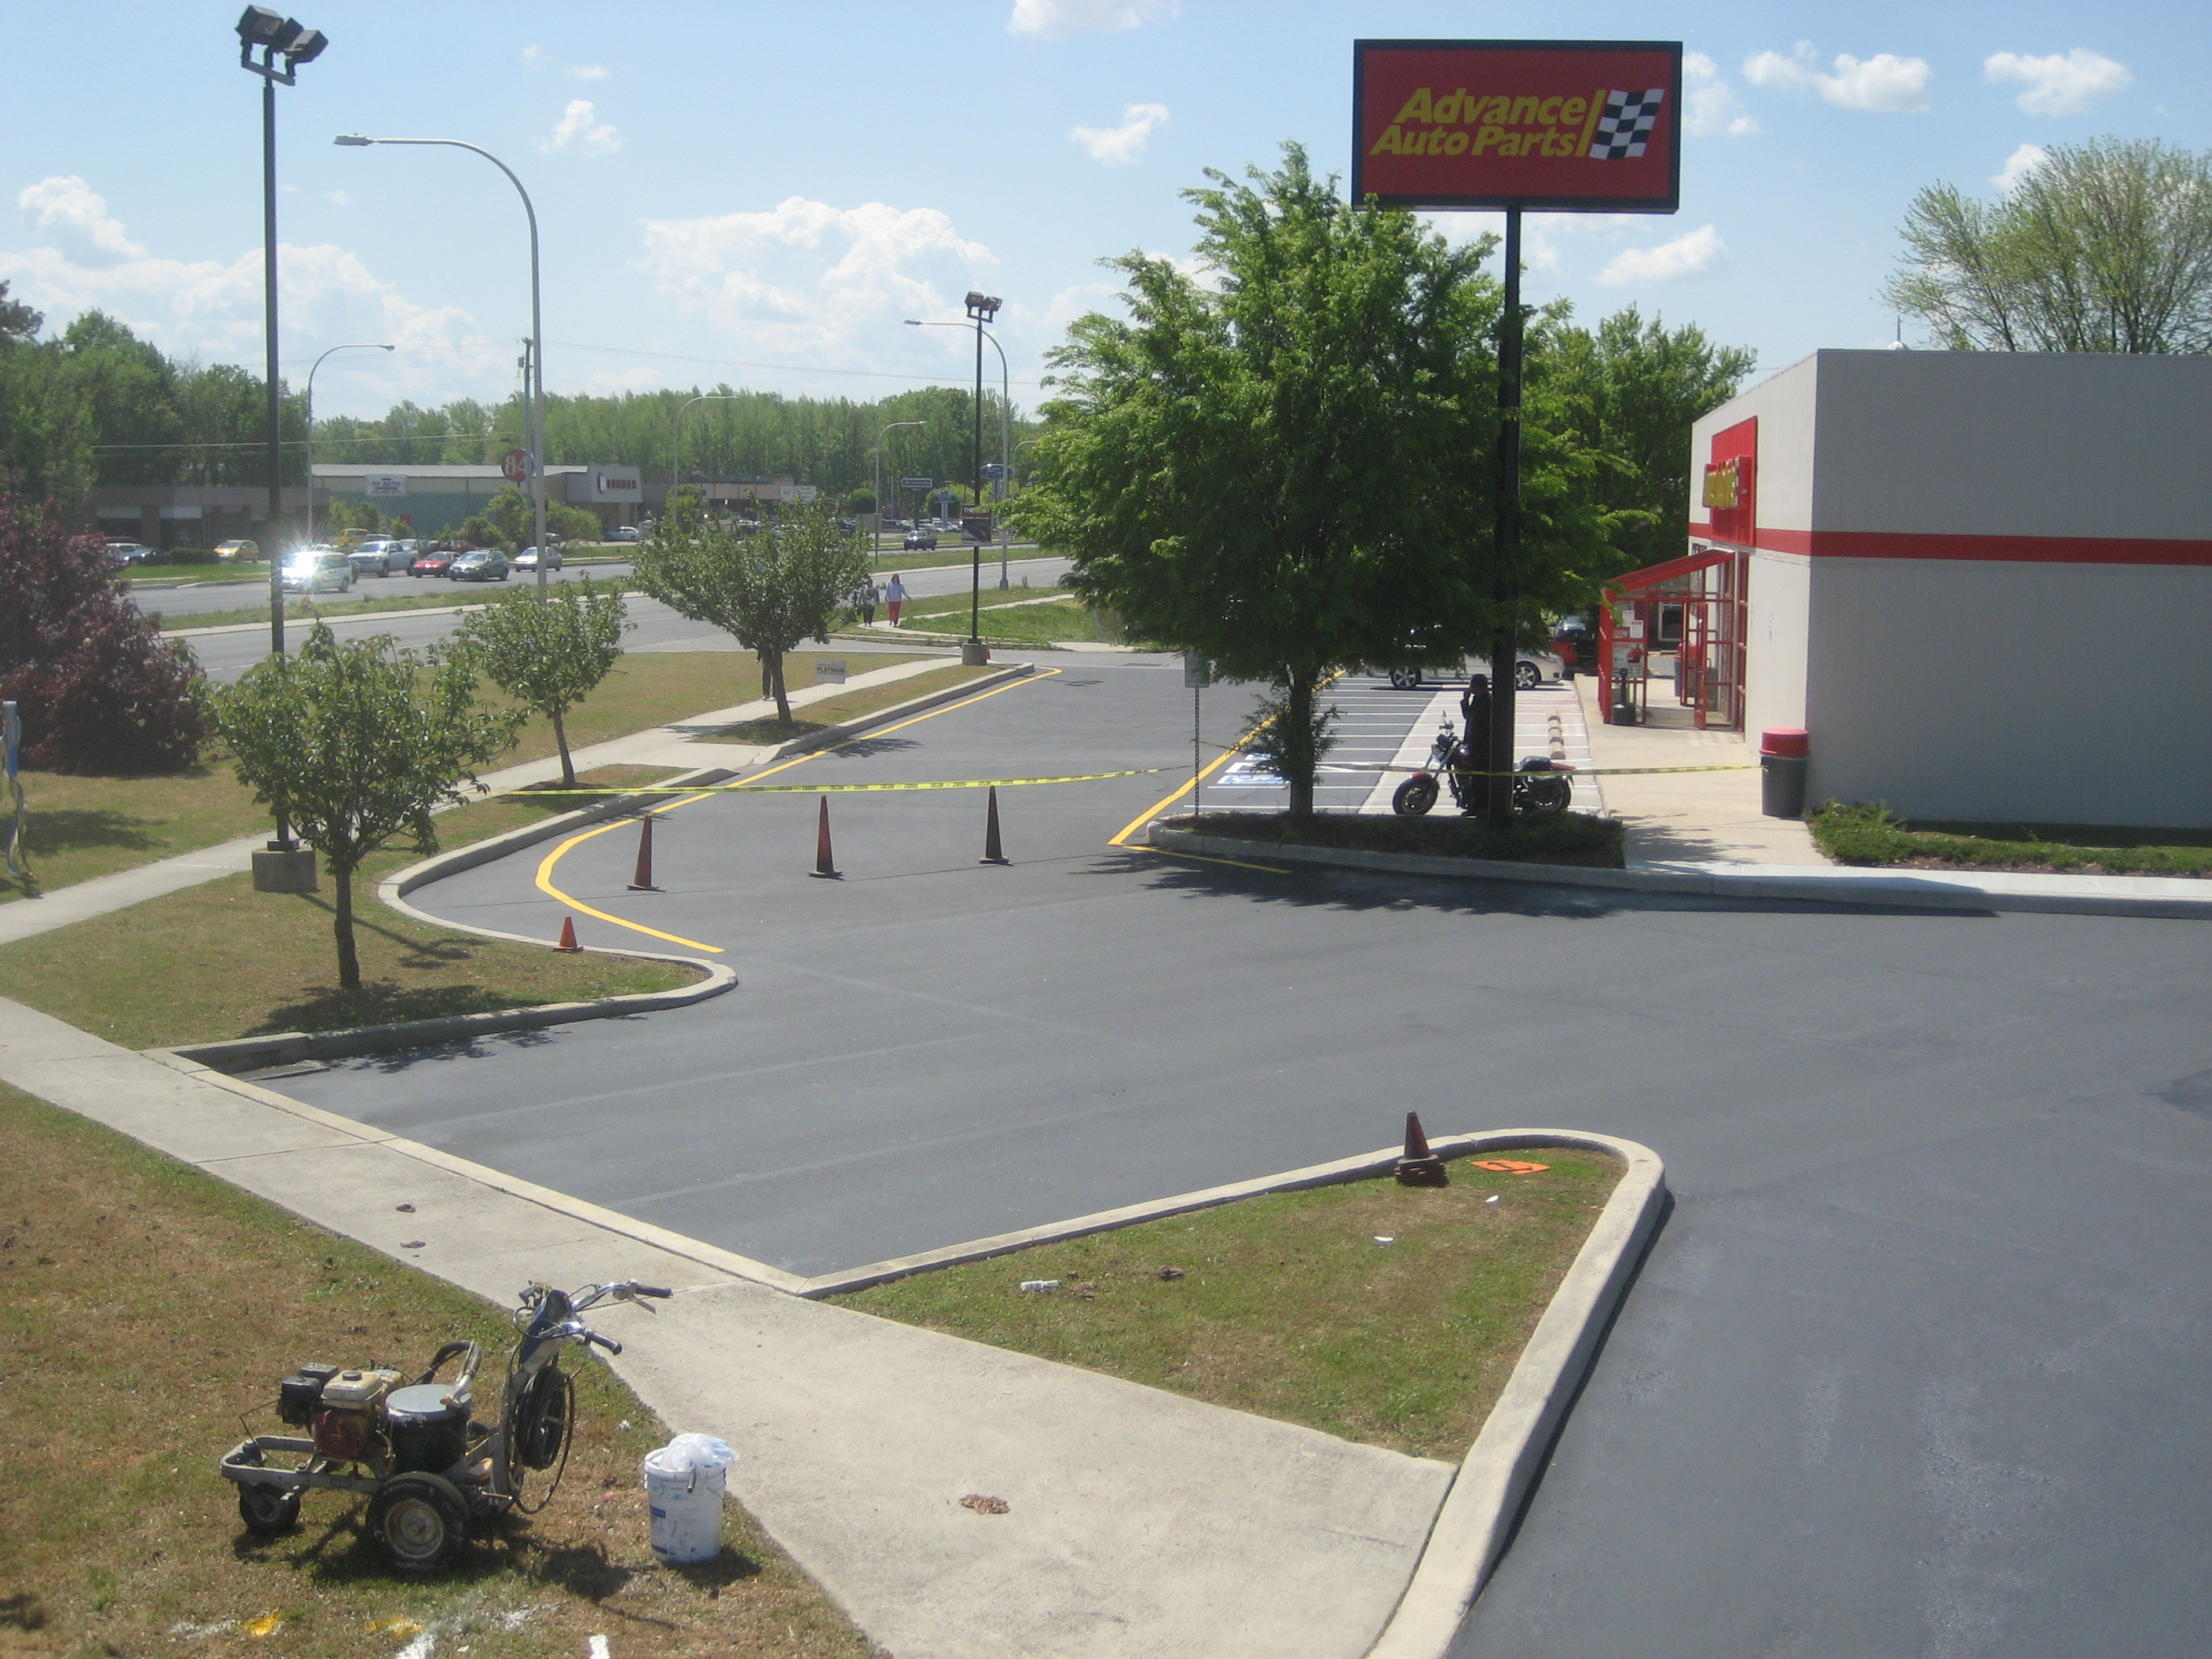 How Much Does It Cost To Sealcoat An Asphalt Parking Lot?